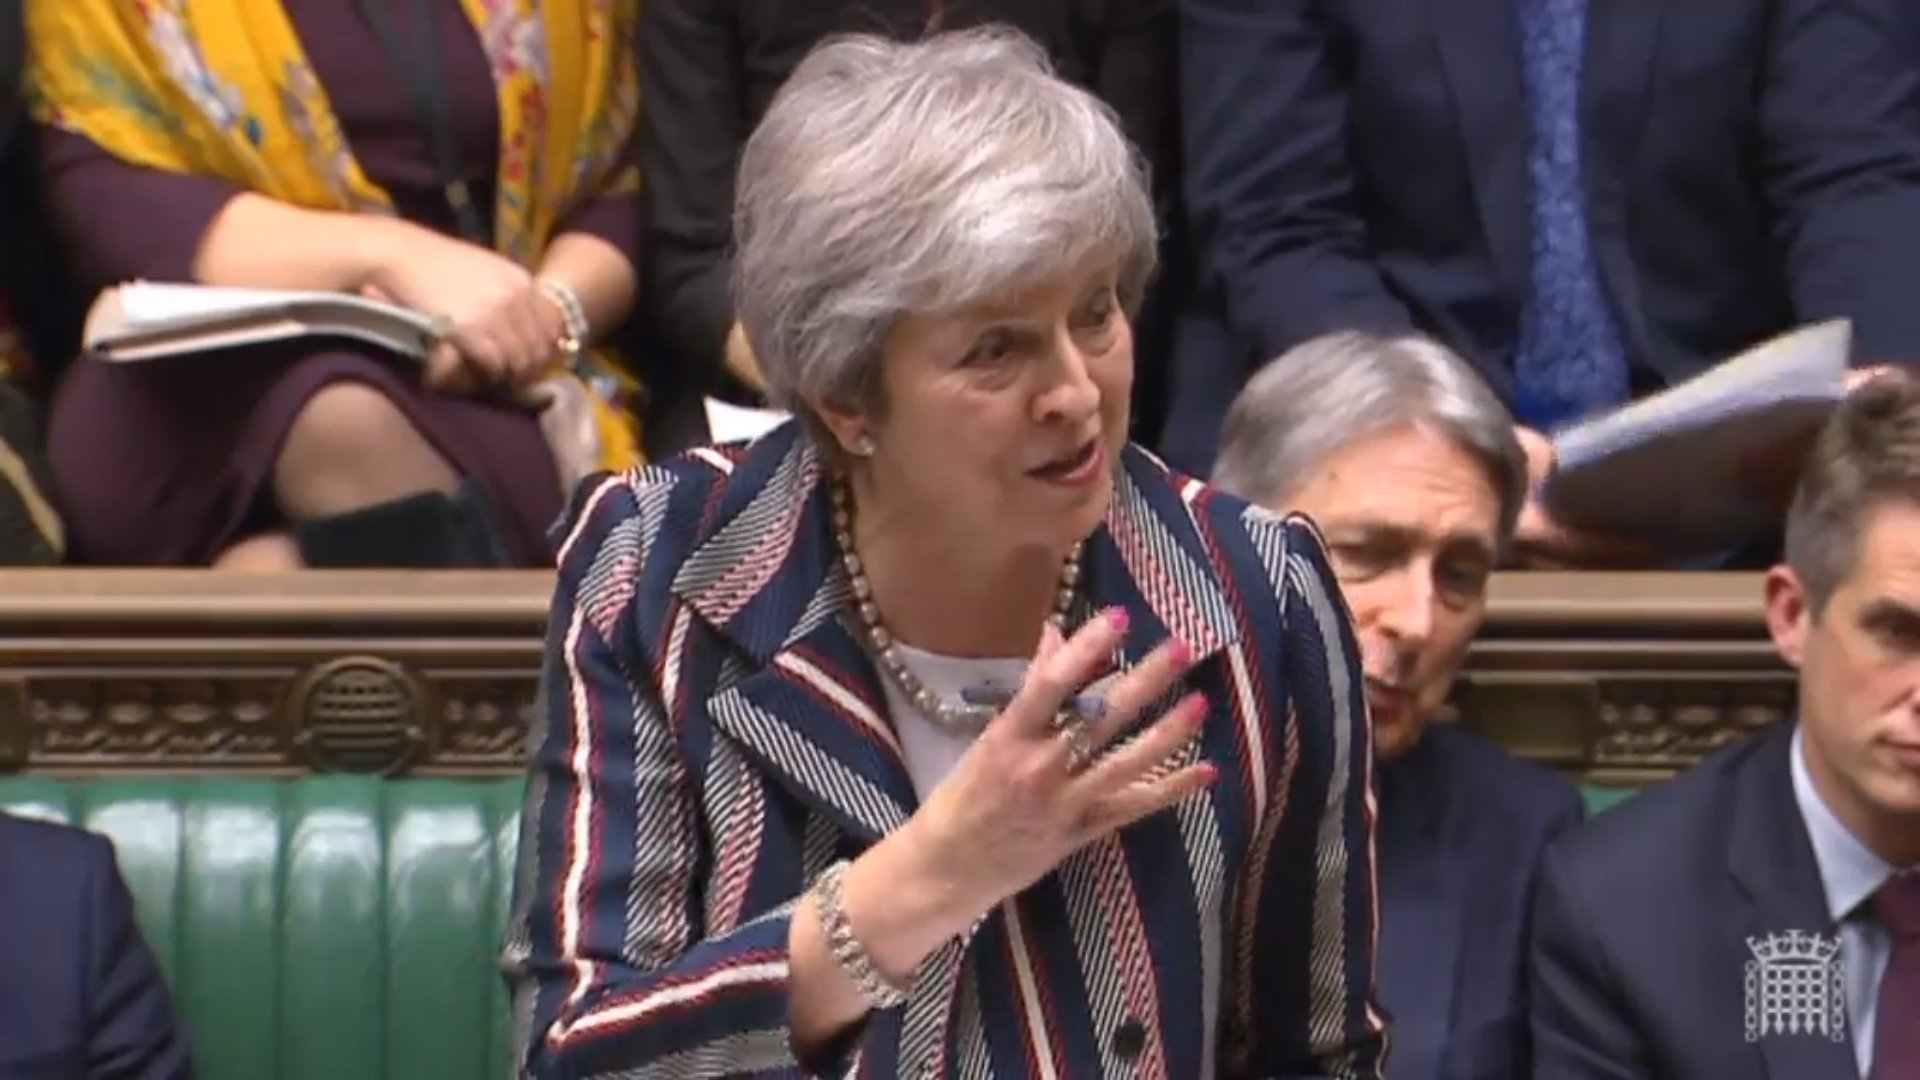 Theresa May admits she and the EU are not 'entirely happy' with Brexit deal